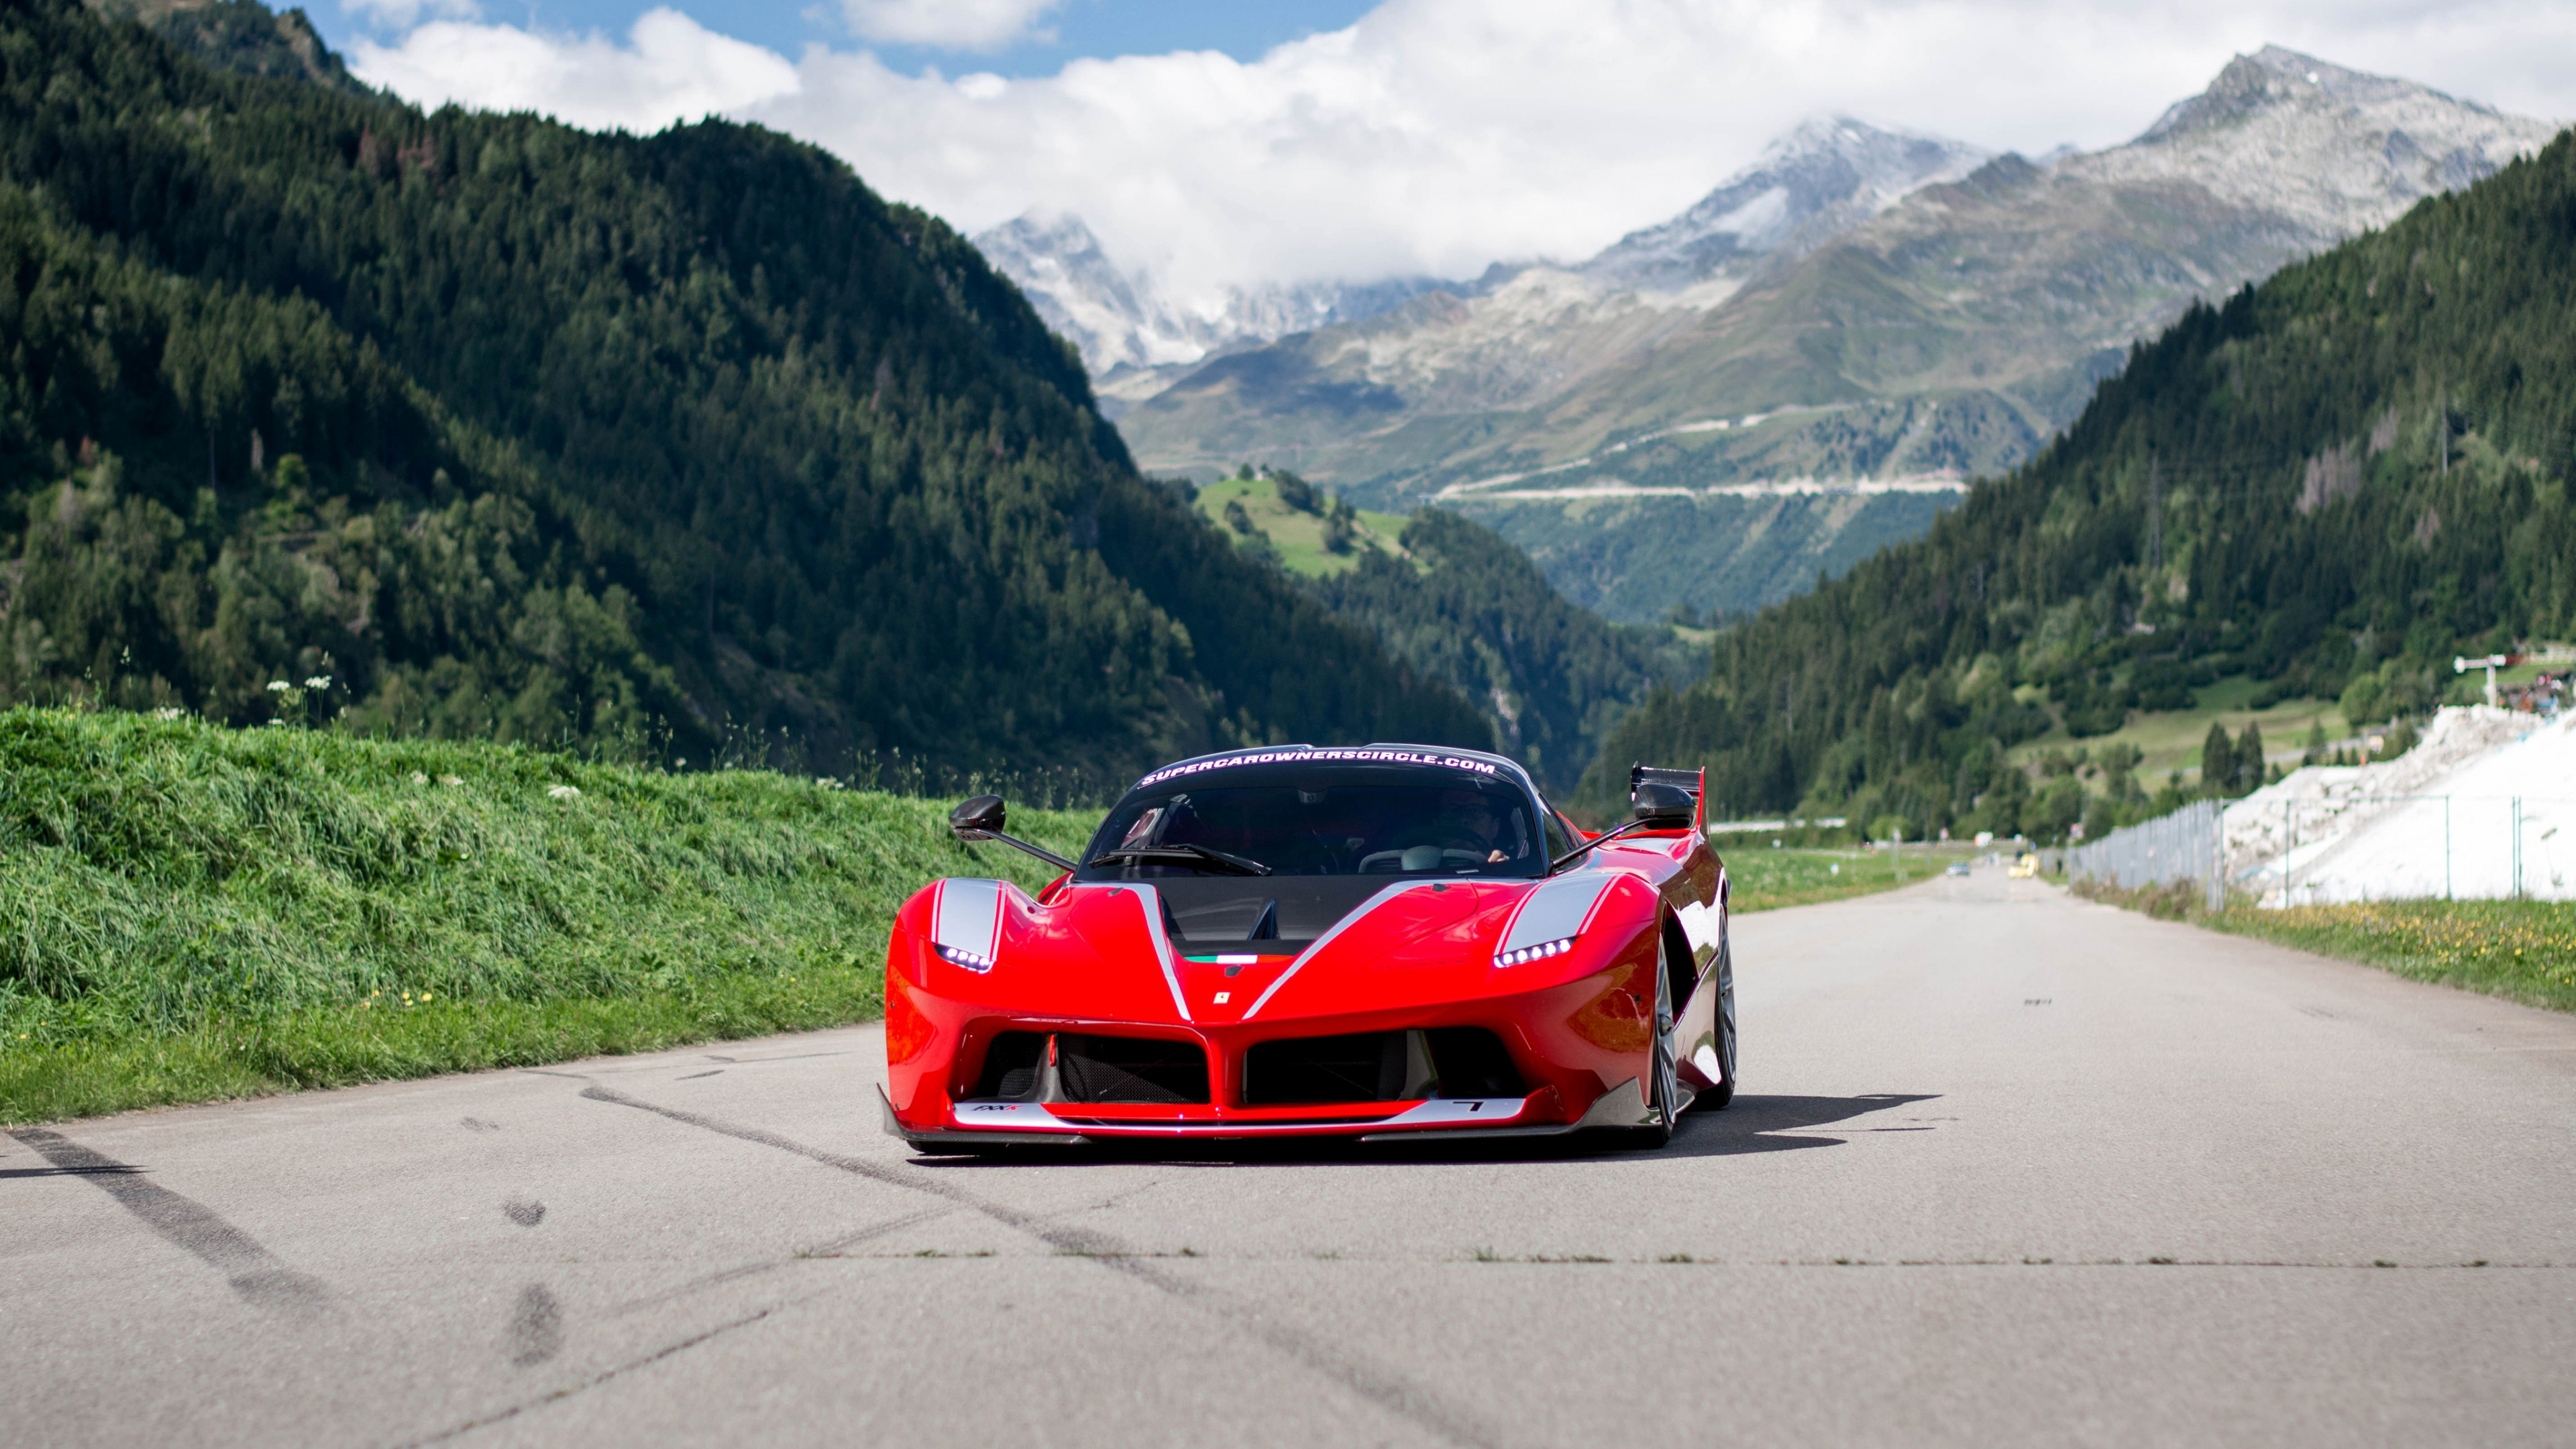 2015 Ferrari 458 Speciale >> 2017 Ferrari FXX K 4K Wallpaper | HD Car Wallpapers | ID #8805